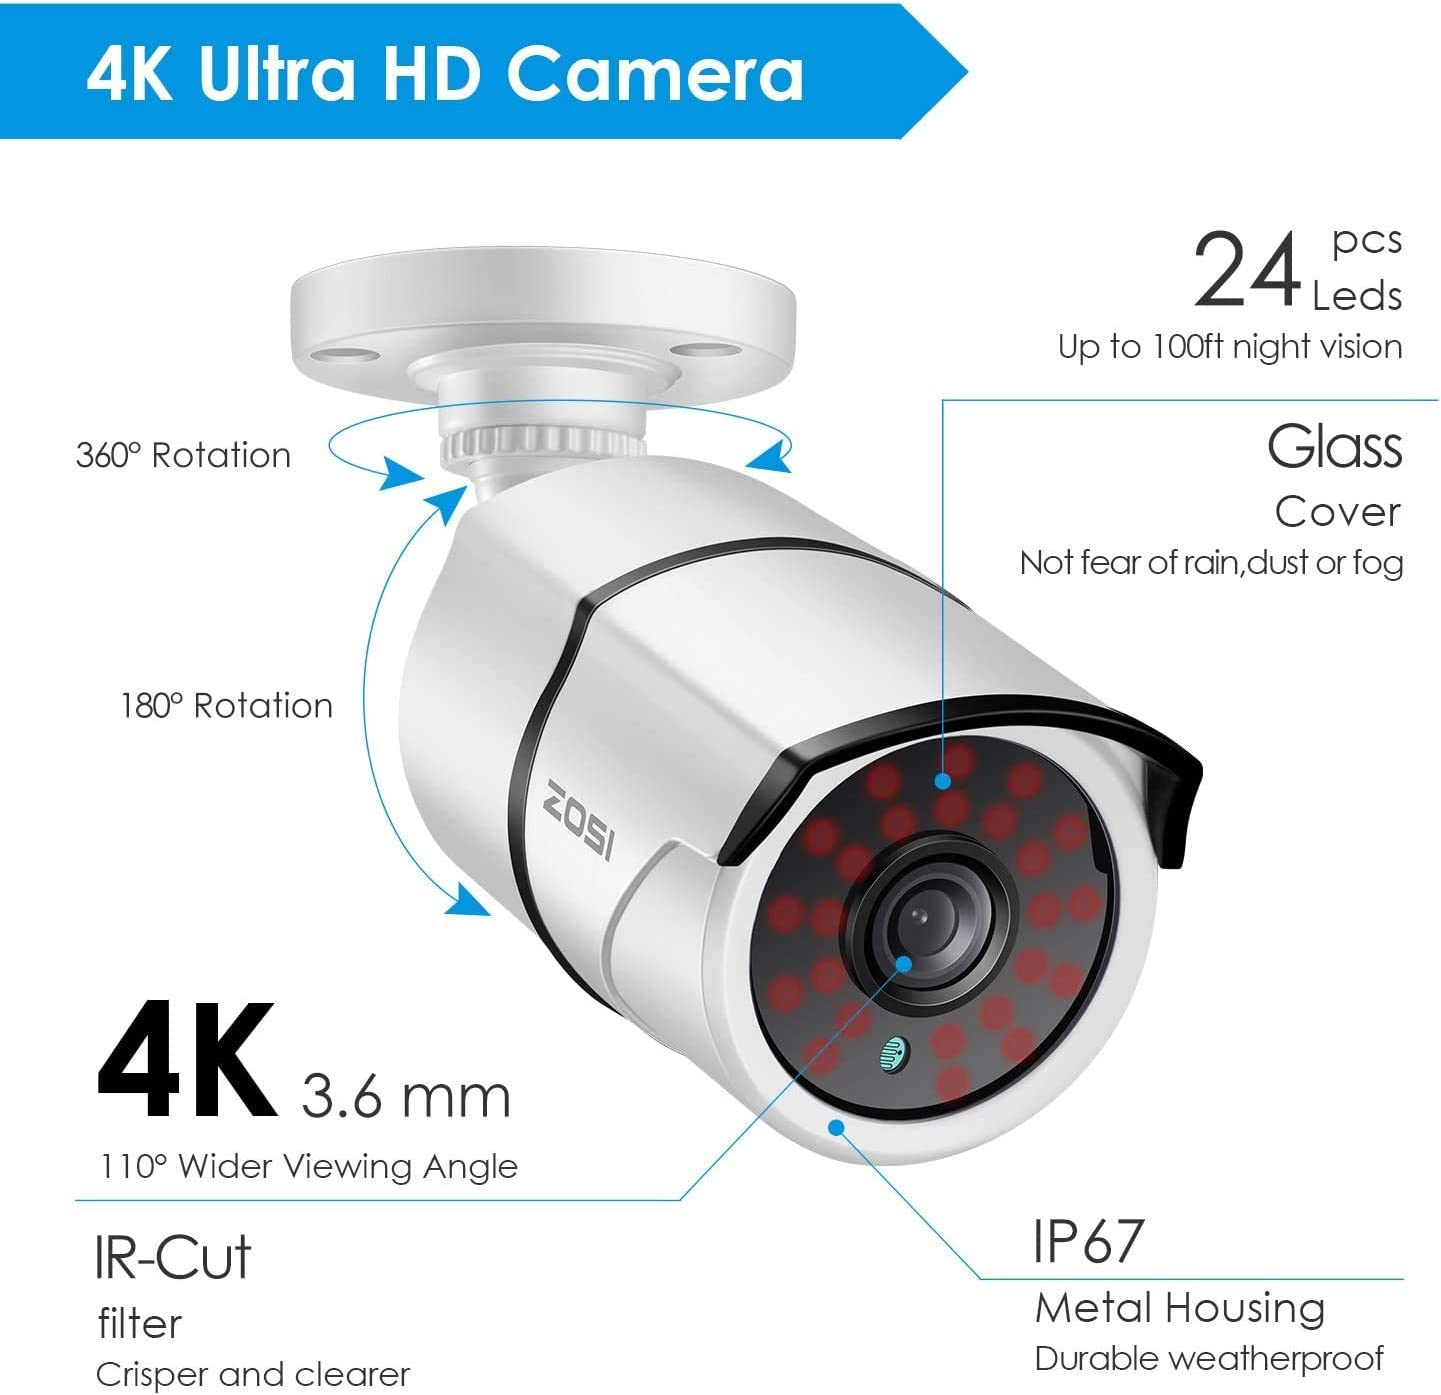 ZOSI 4K 8.0MP Ultra High Definition Security Camera TVI Bullet CCTV Camera for Surveillance System Home Office Using (Renewed)